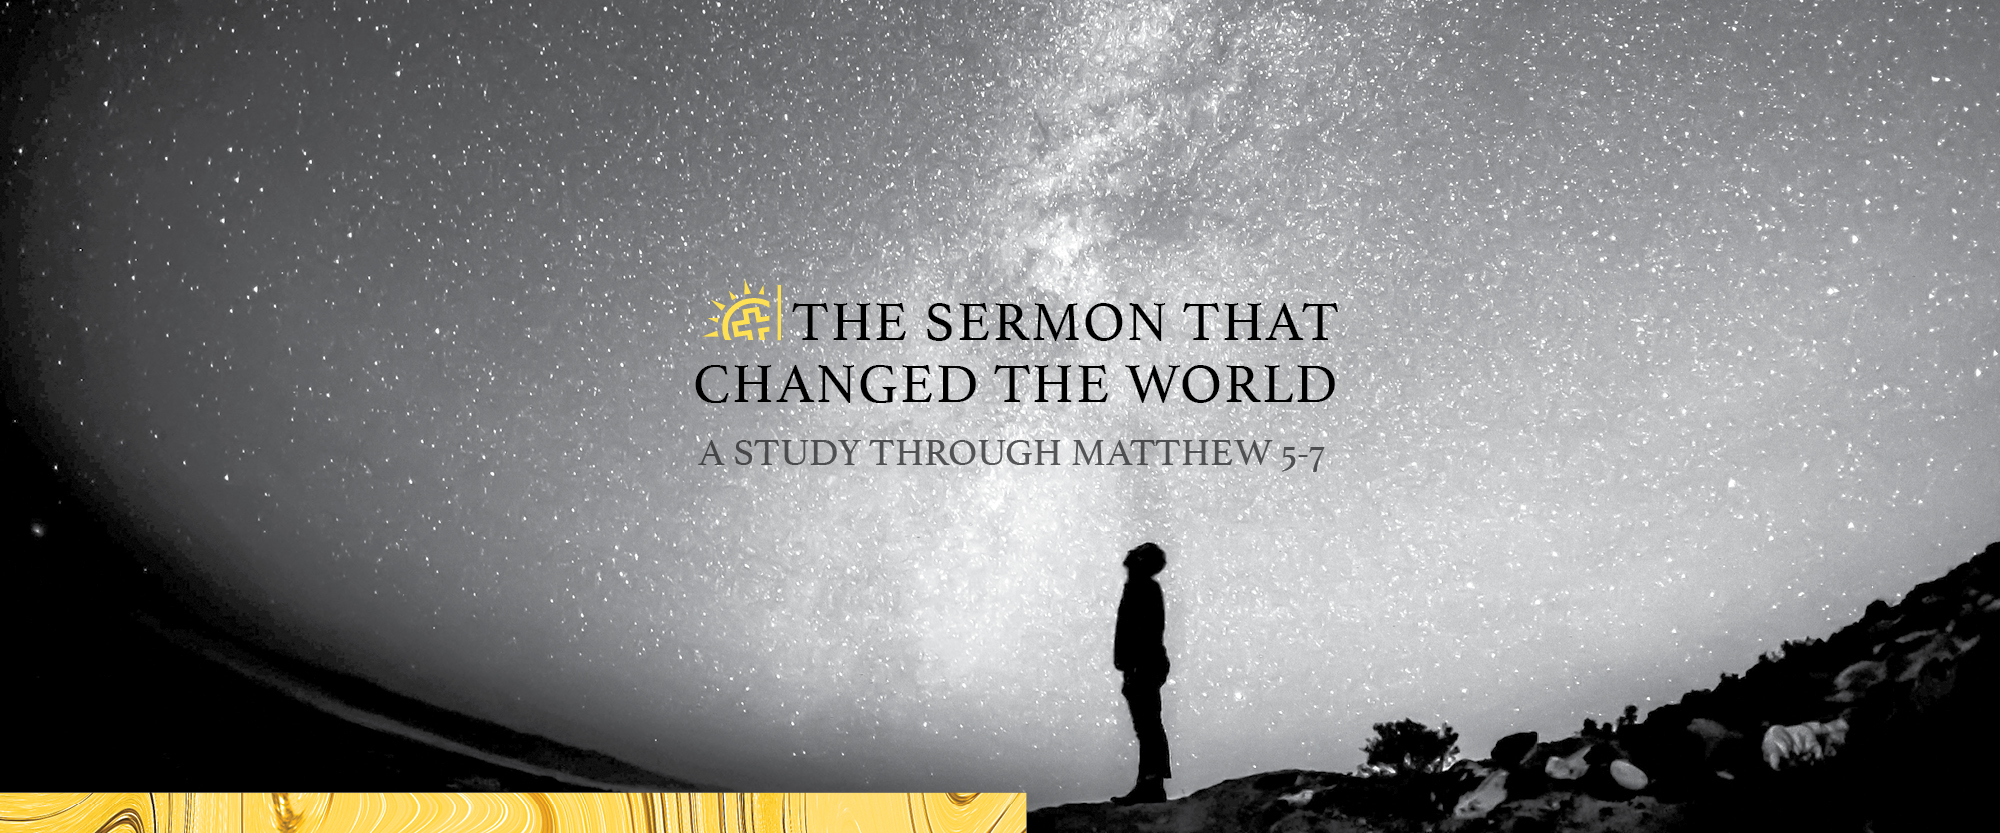 The Sermon That Changed The World | Calvary Chapel Fort Lauderdale